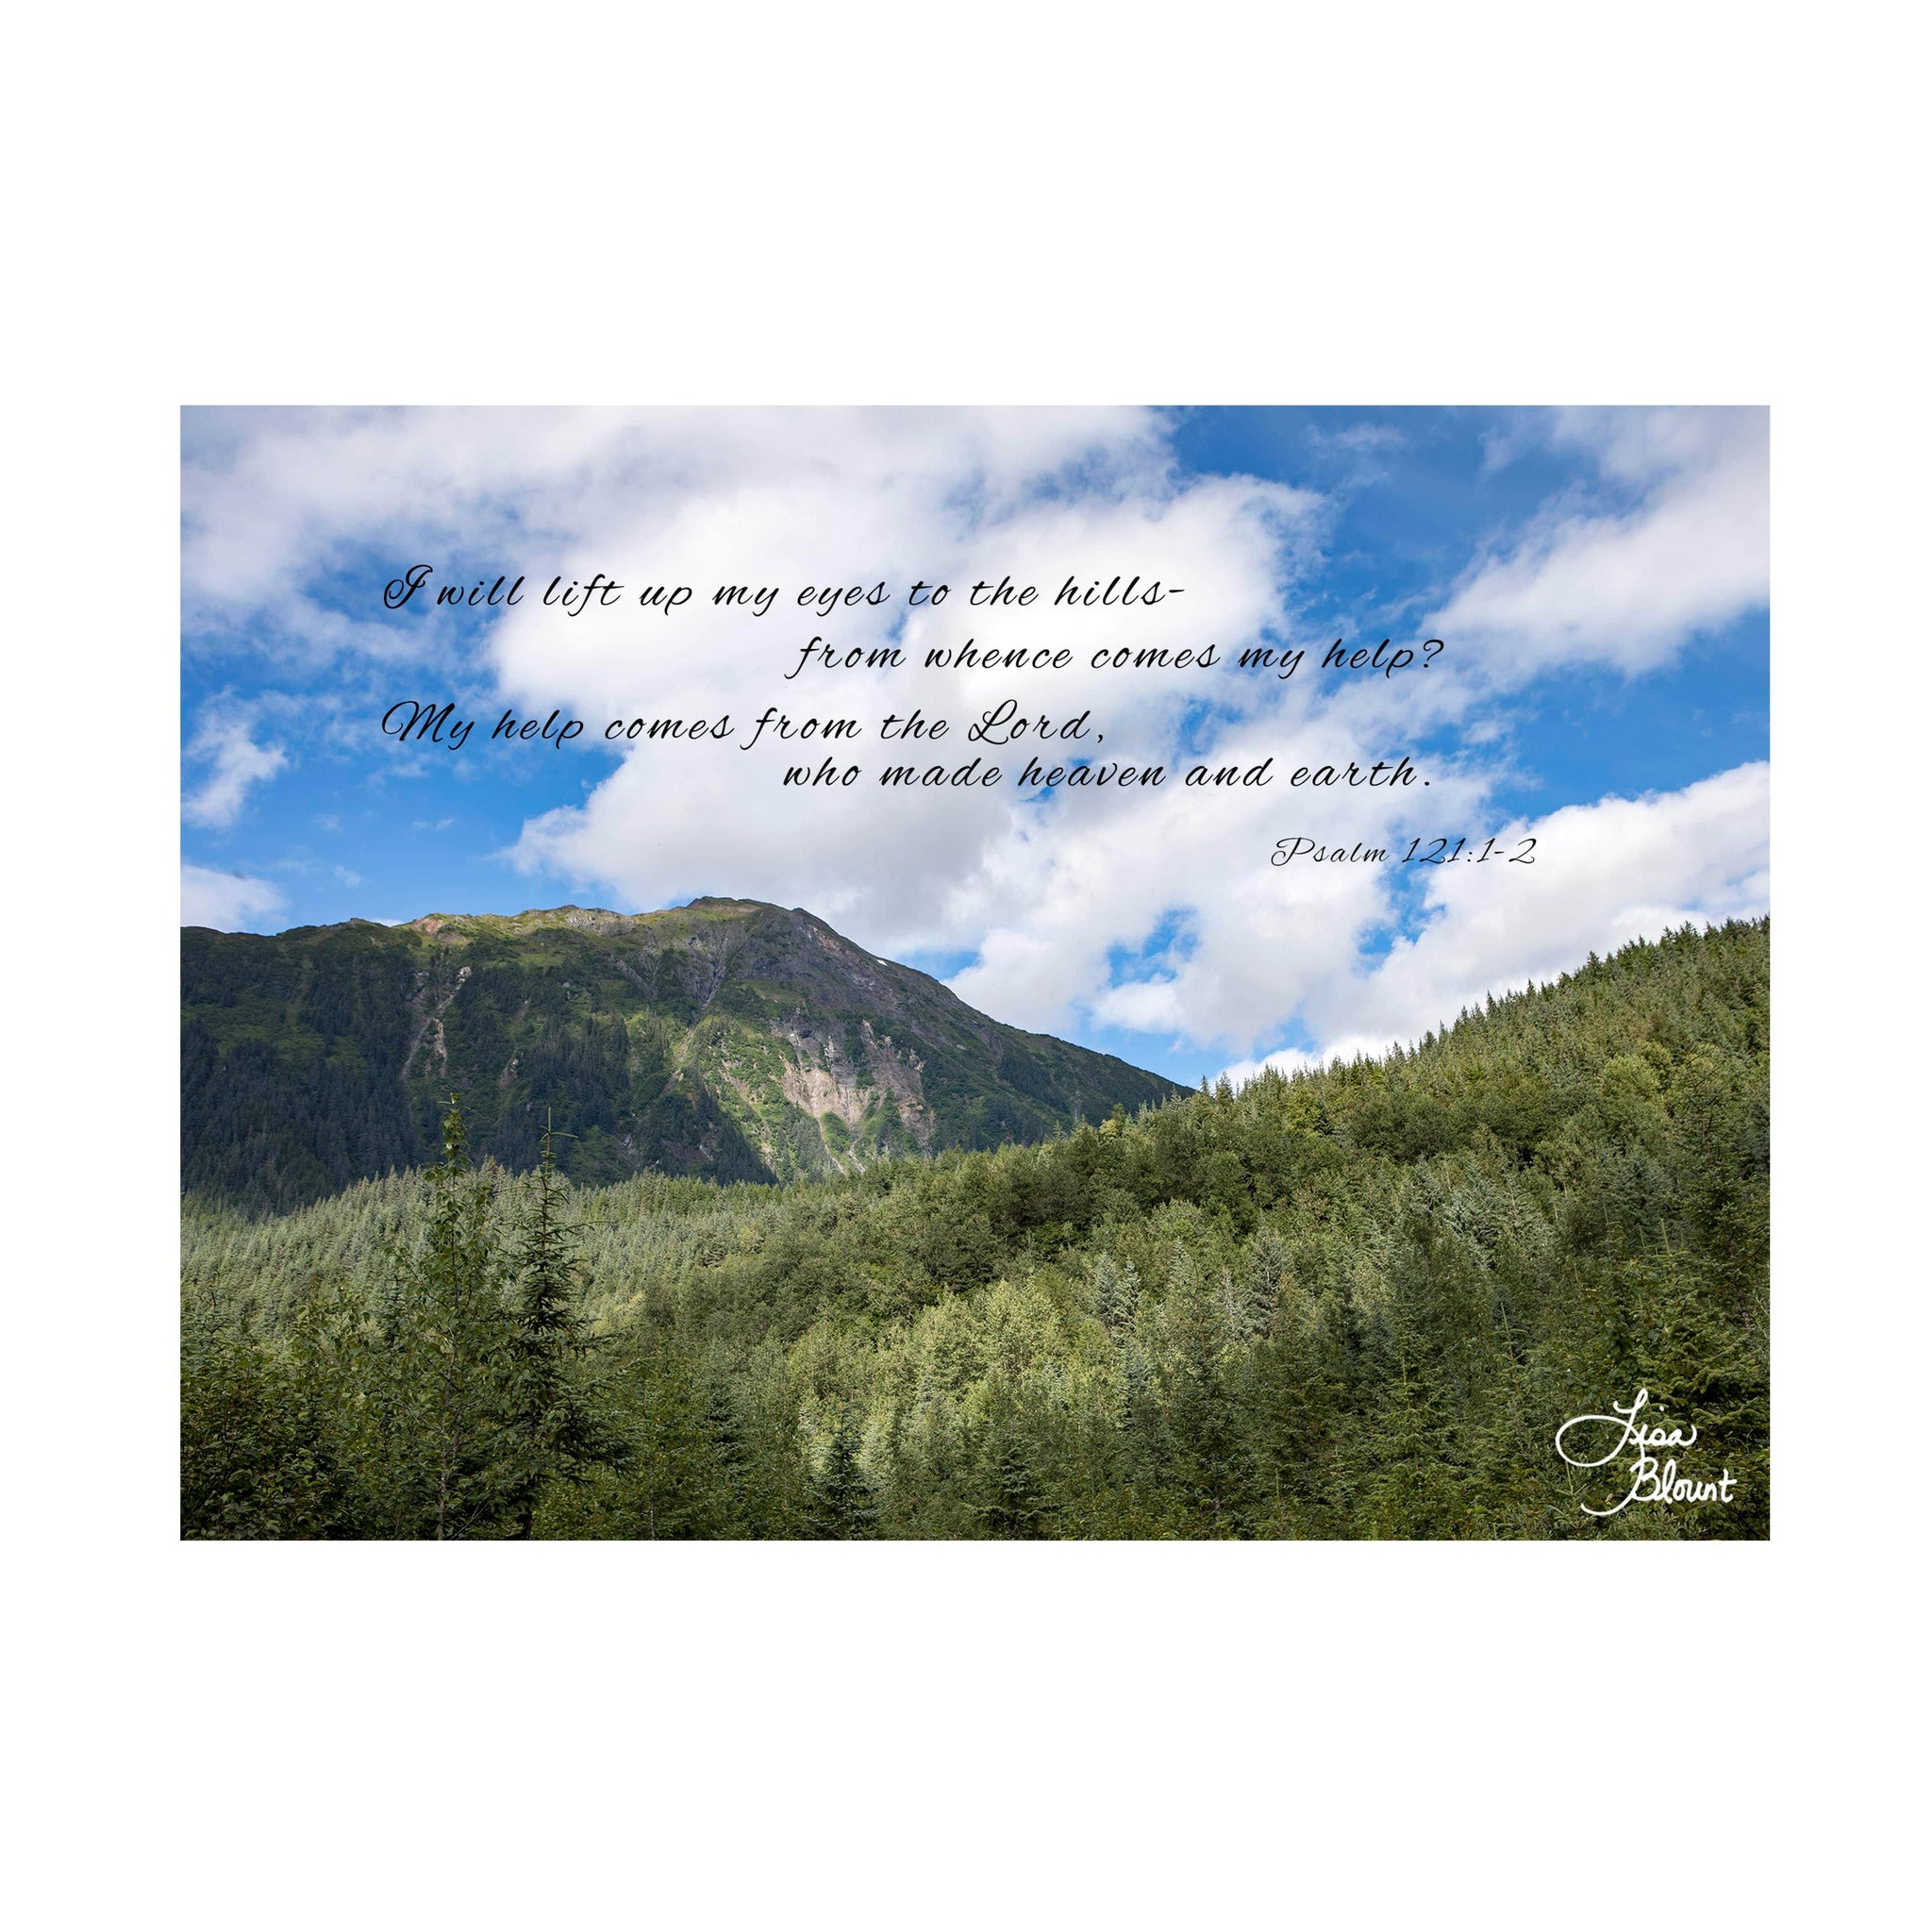 Psalm 1211 2 eyestothehills 5x7 greeting card lisa blount psalm 1211 2 eyestothehills 5x7 greeting card m4hsunfo